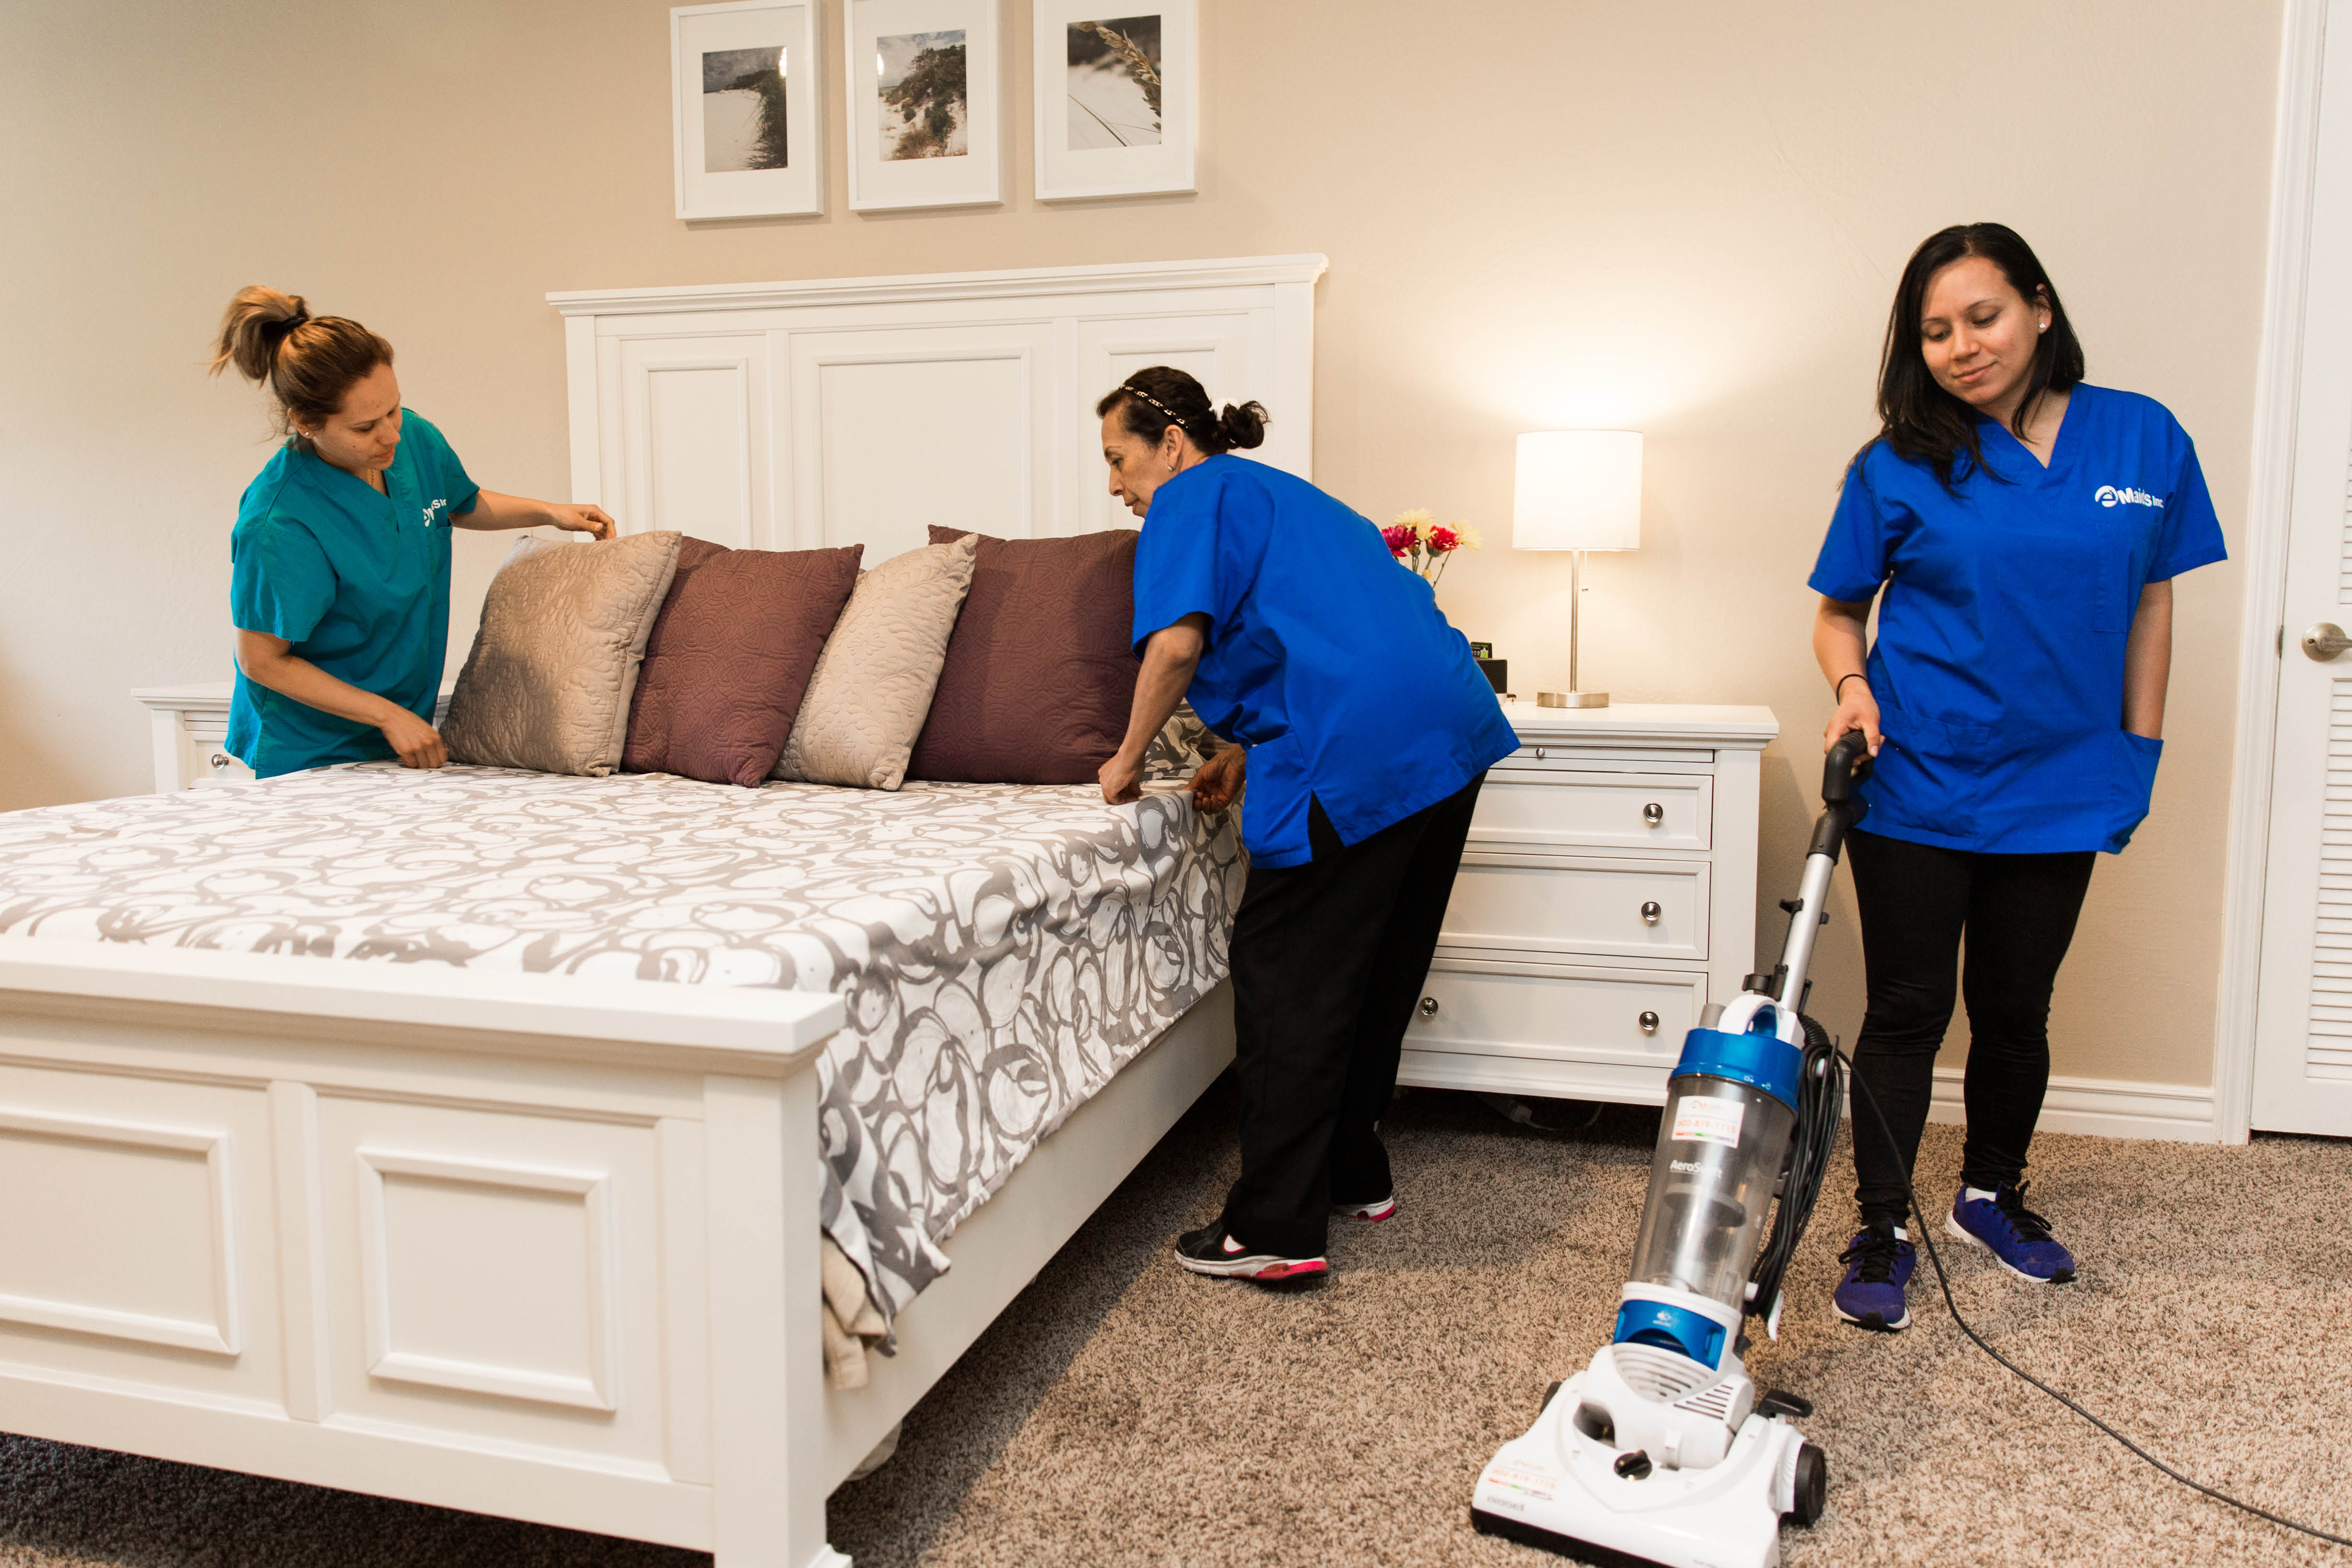 office cleaning services prices, one day house cleaning service, best home cleaning, i